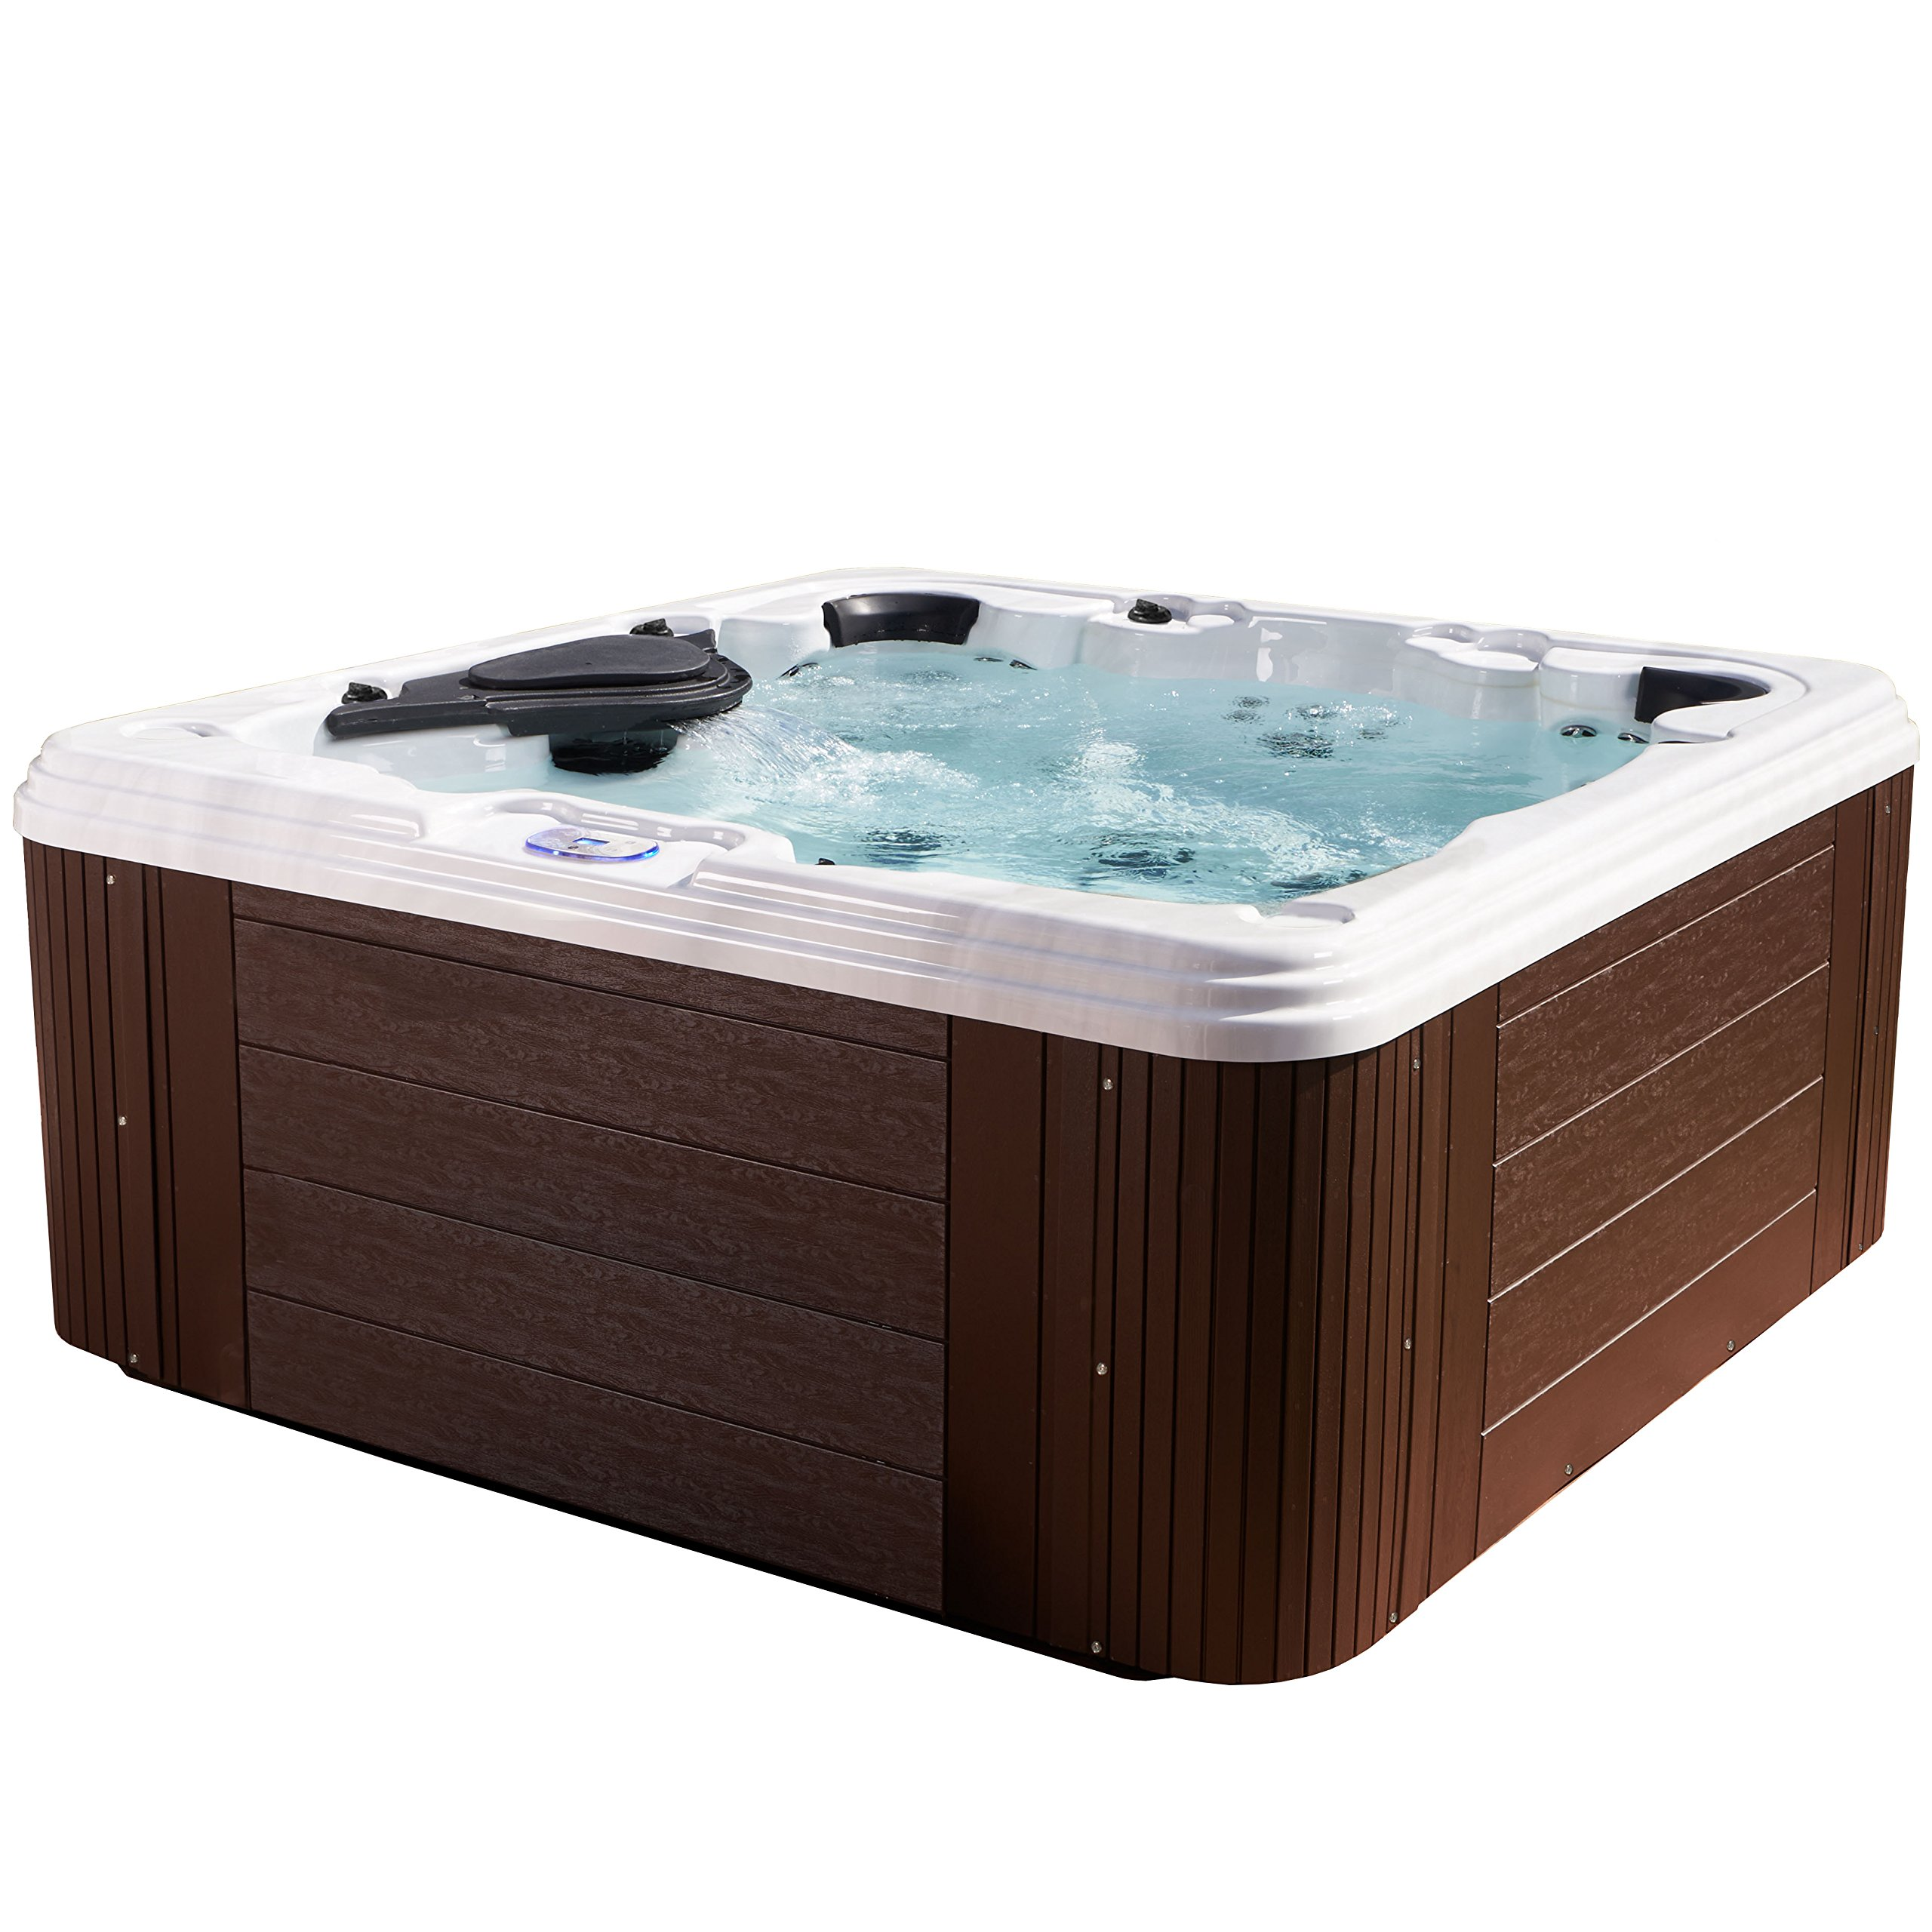 Essential Hot Tubs - Civility - 60 Jets, Acrylic Hot Tub